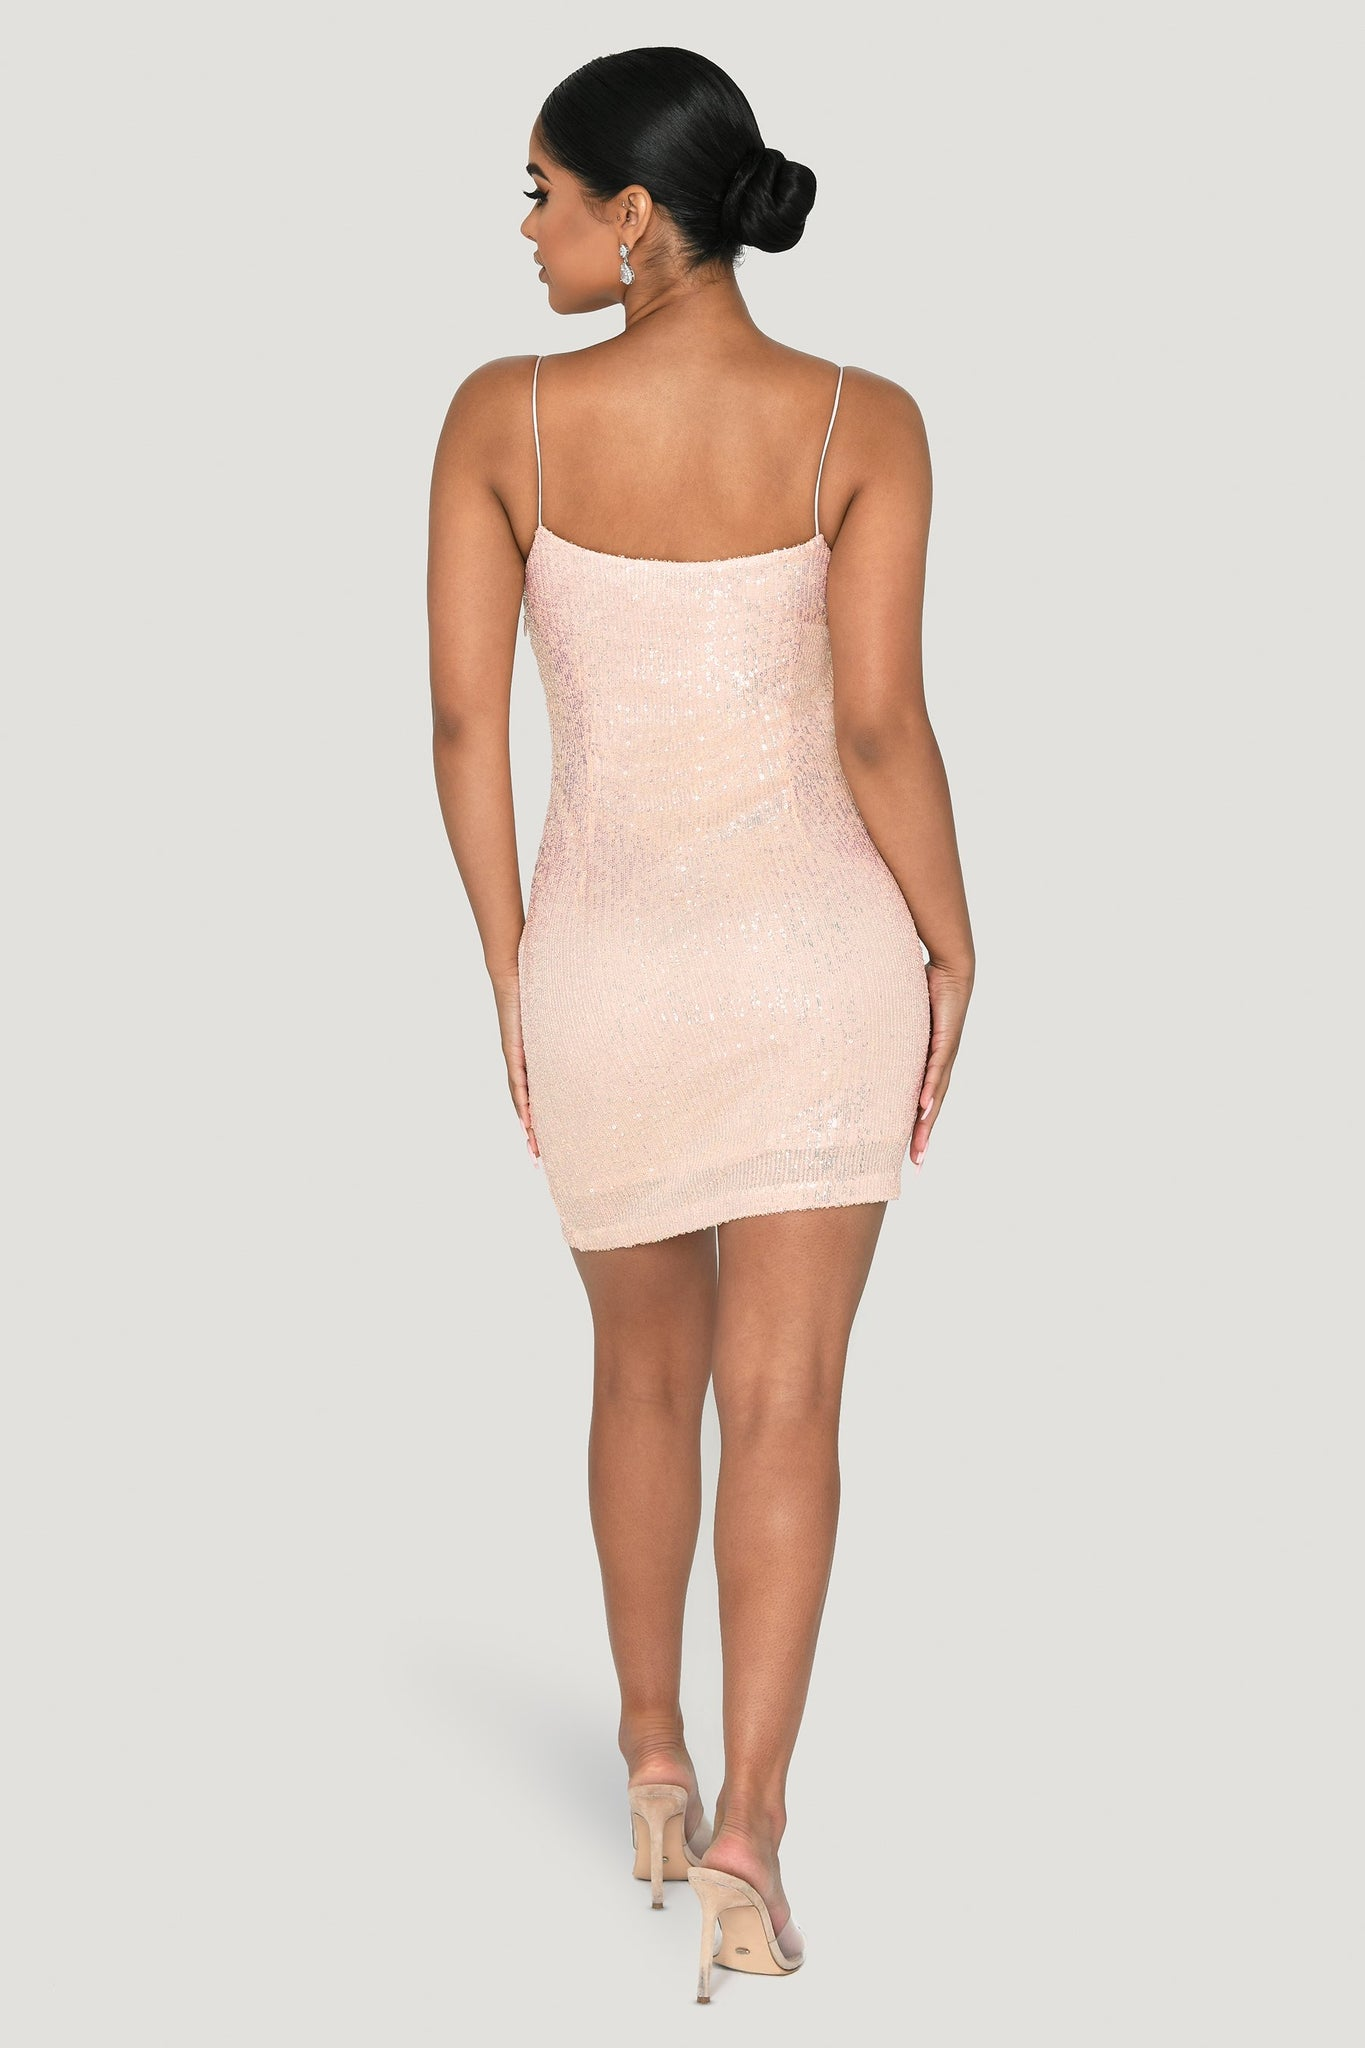 Kyra Thin Strap Bodycon Mini Dress - Iridescent - MESHKI